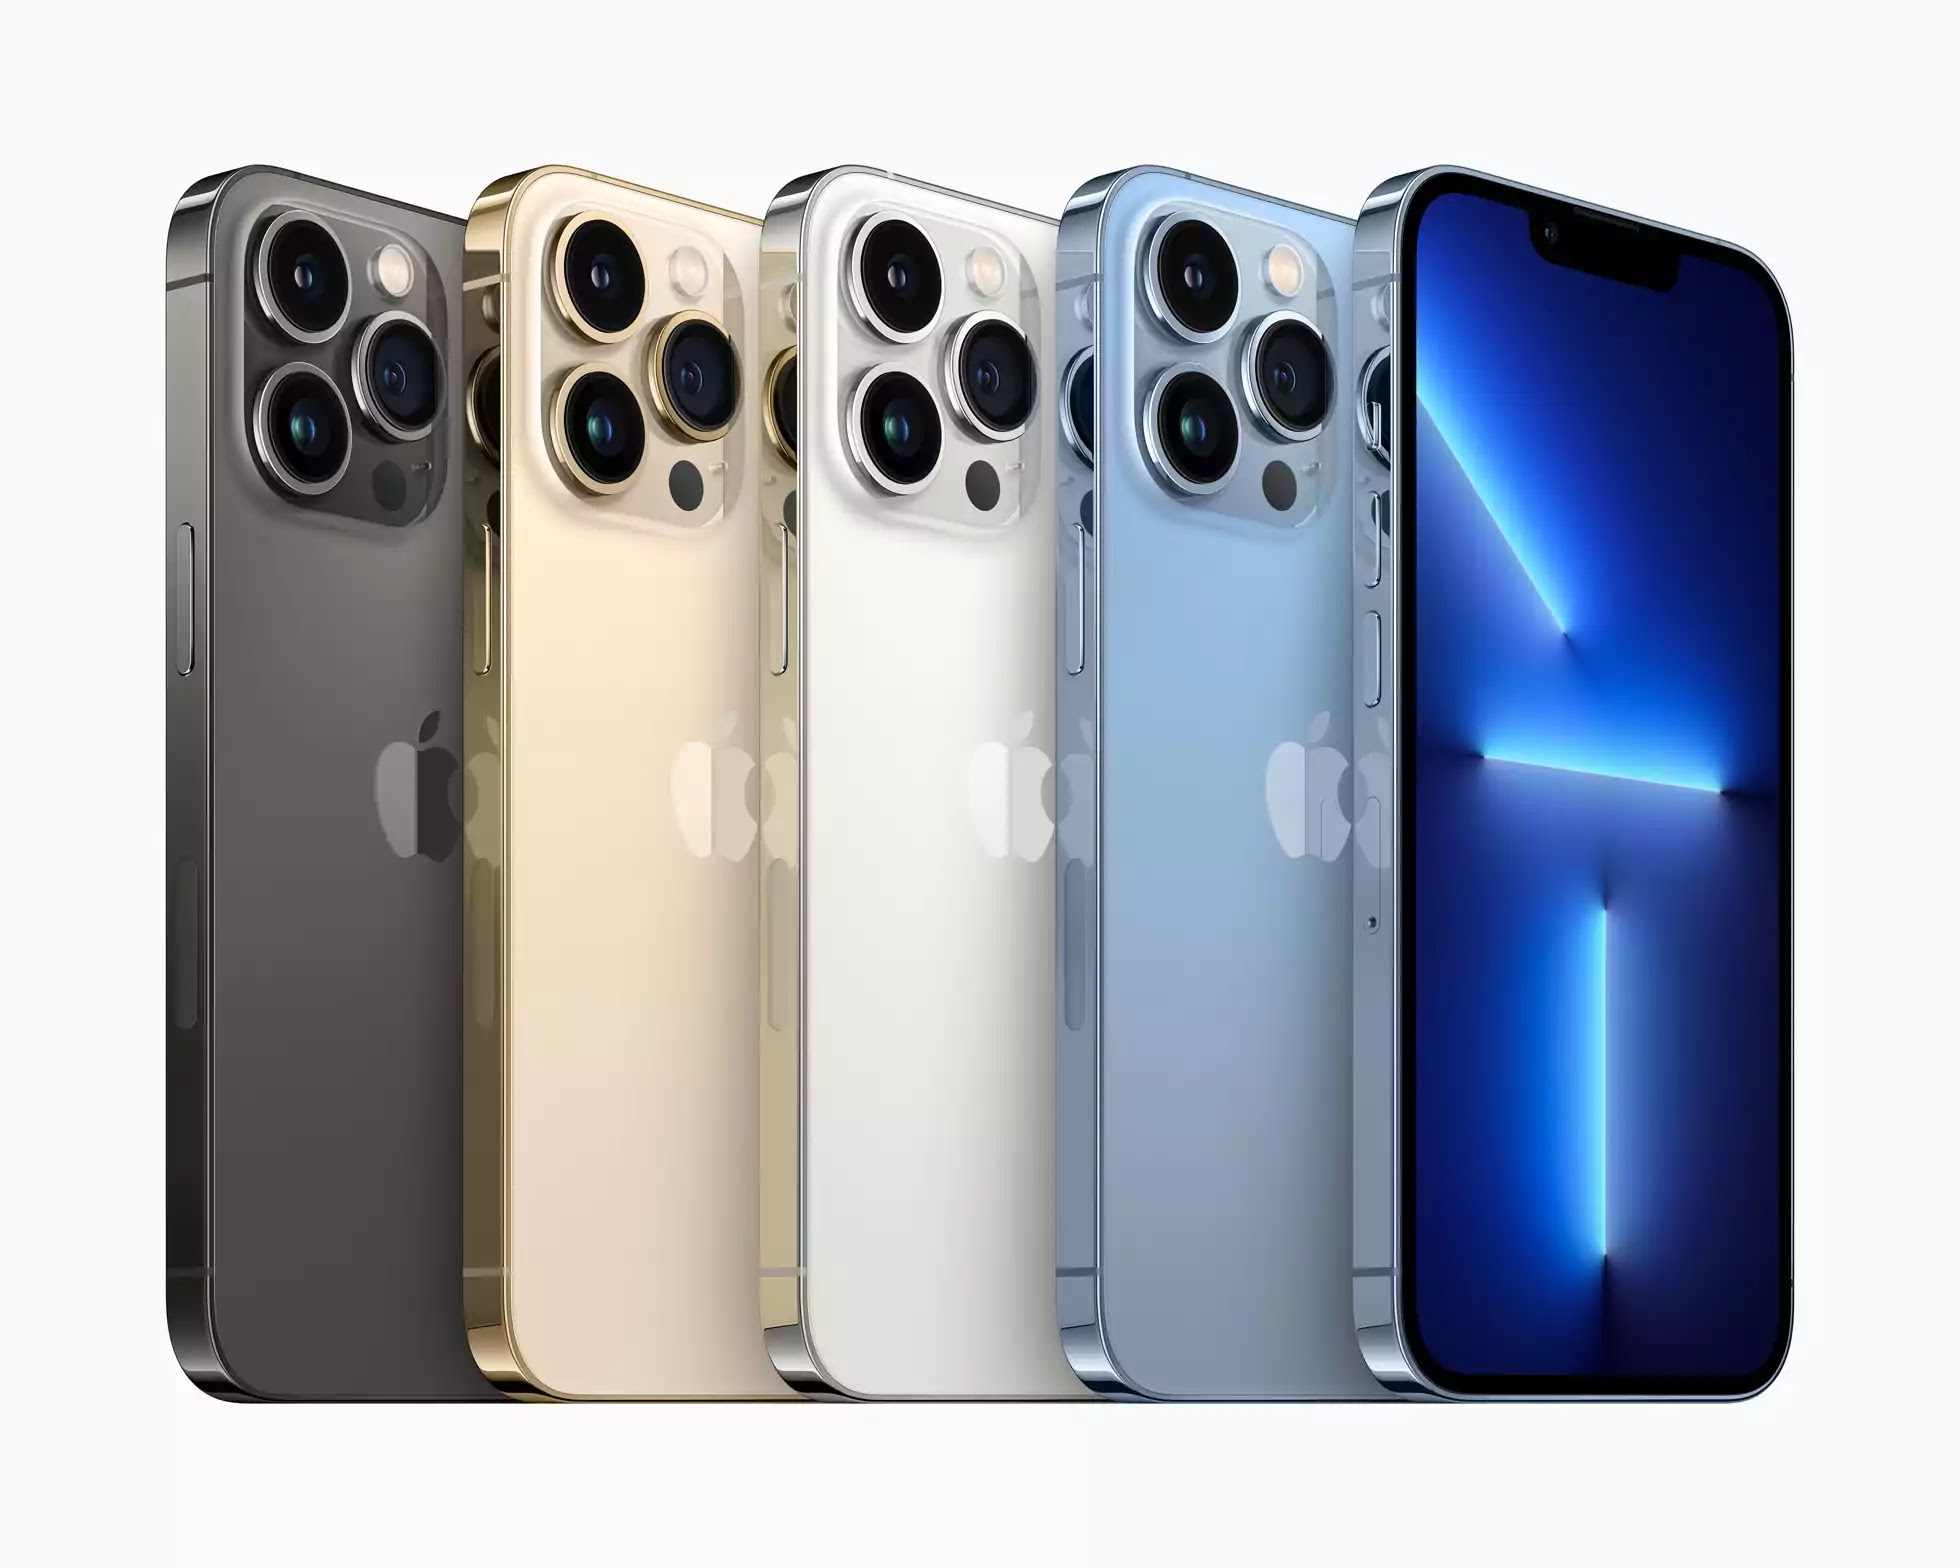 Apple iPhone 13 Pro Series Colors